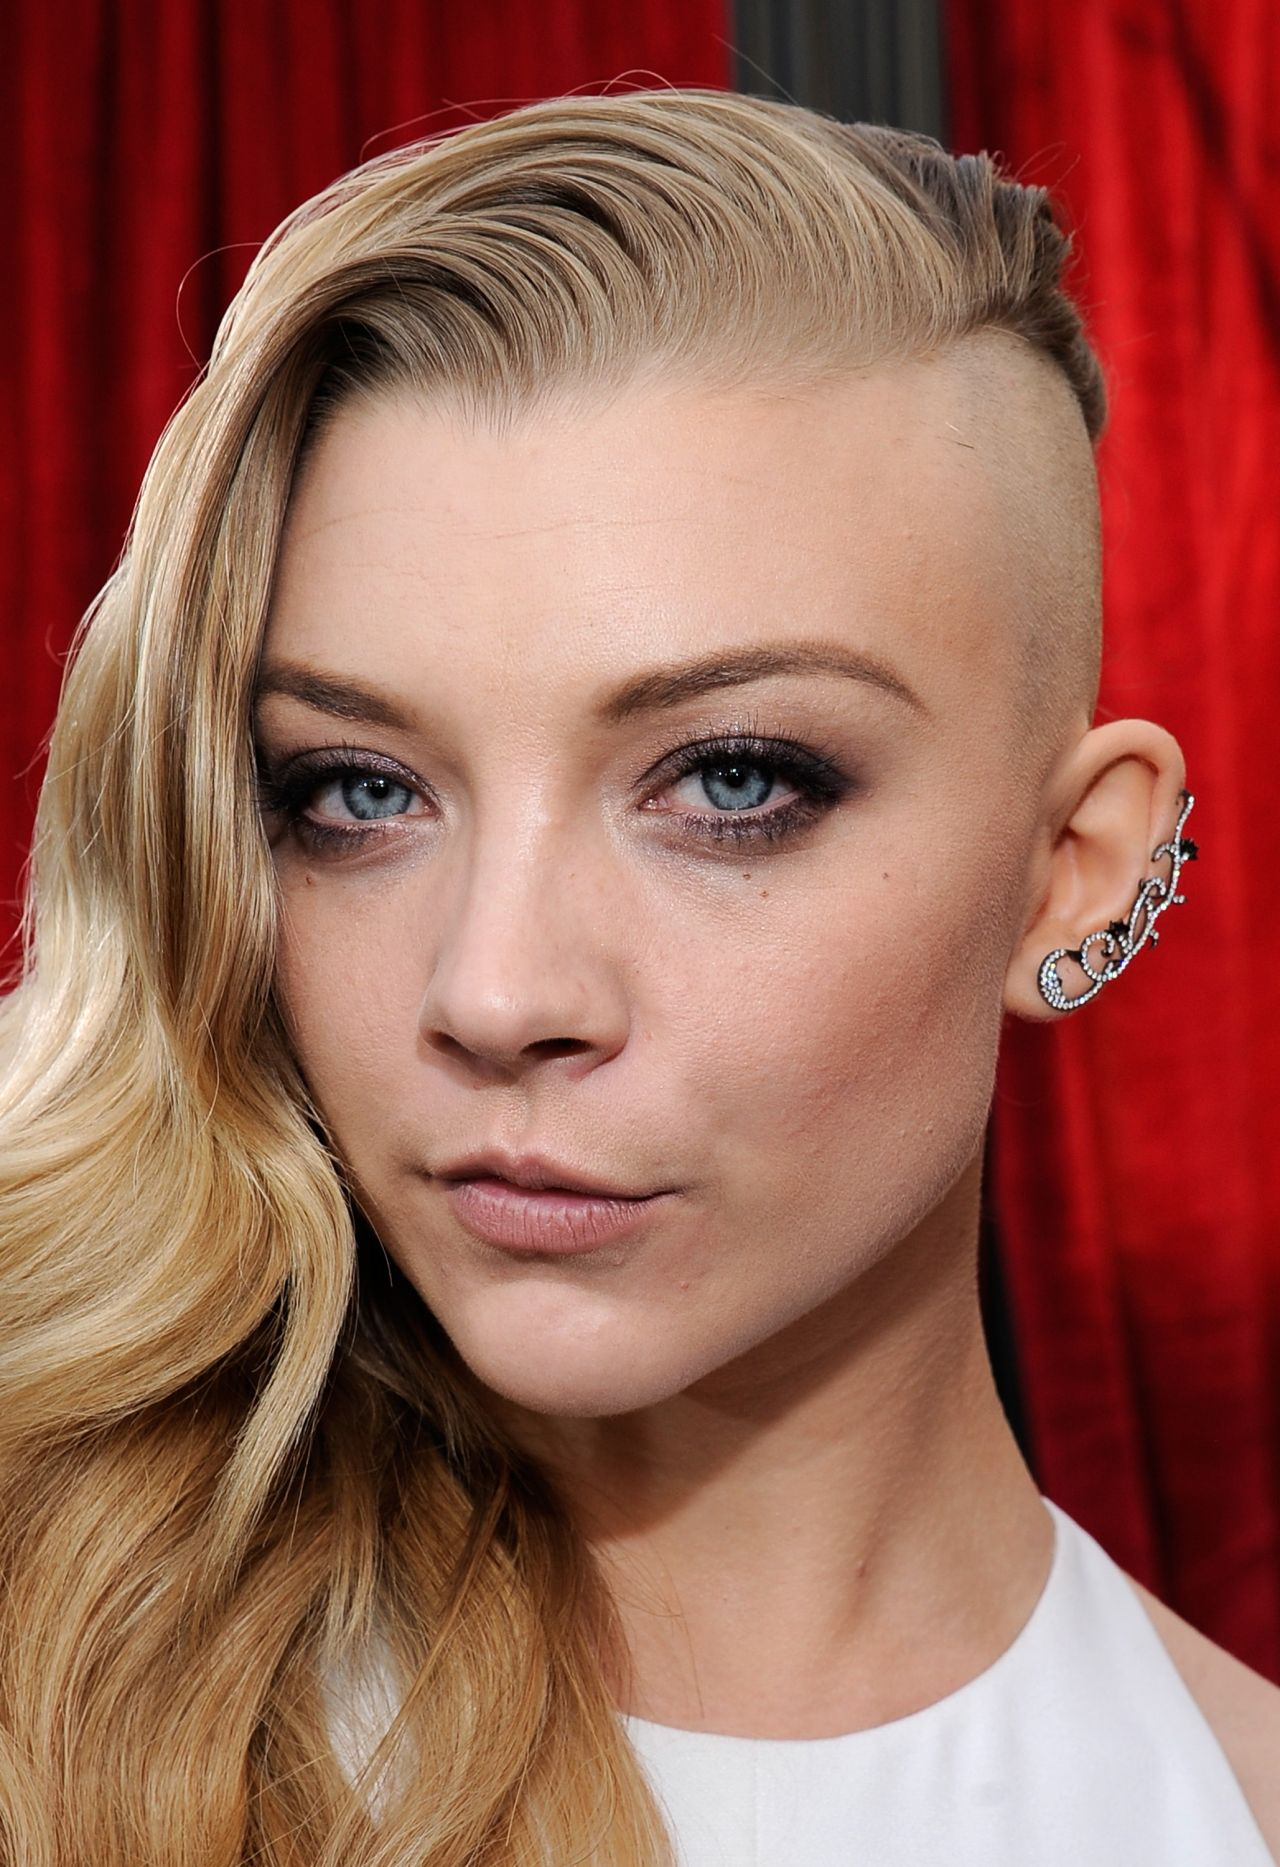 https://celebmafia.com/wp-content/uploads/2014/01/natalie-dormer-wears-marios-schwab-at-2014-sag-awards_8.jpg